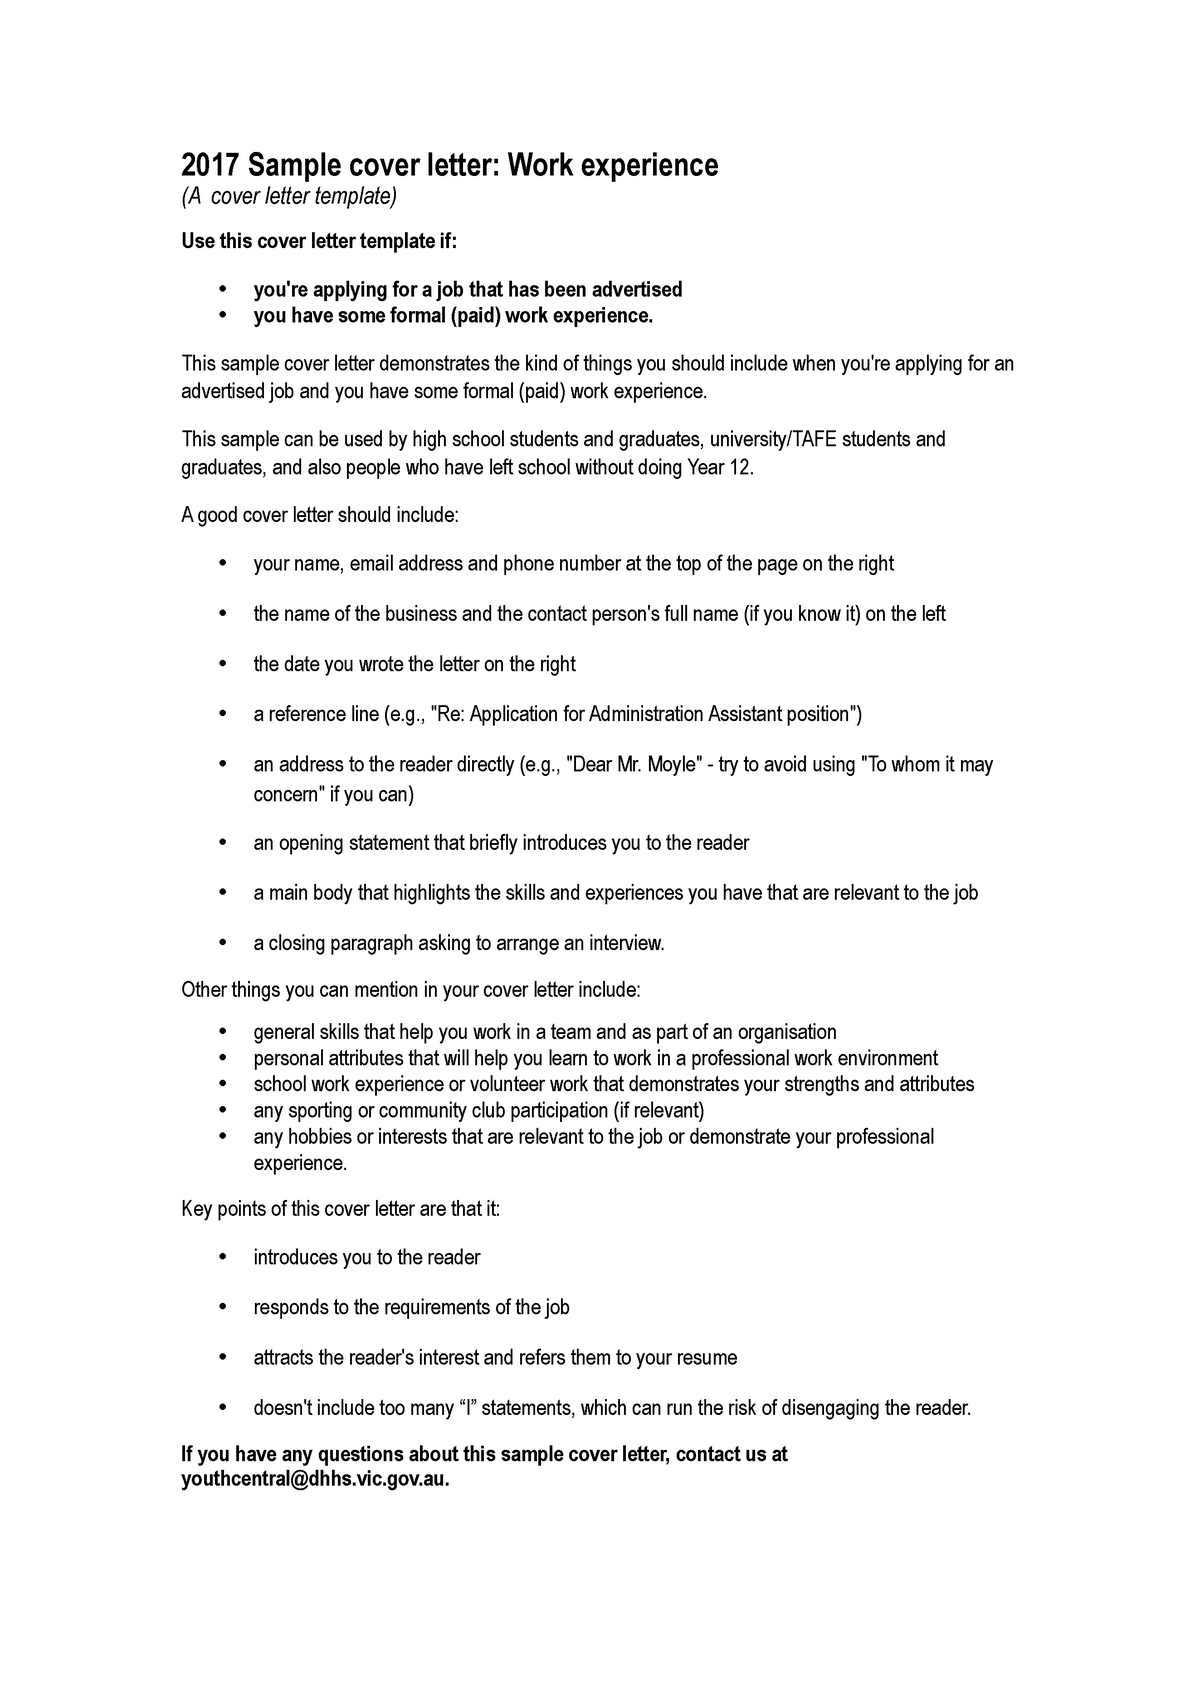 Cover Letter Work Experience 2017 Sample Cover Letter Work Experience Cover Studocu